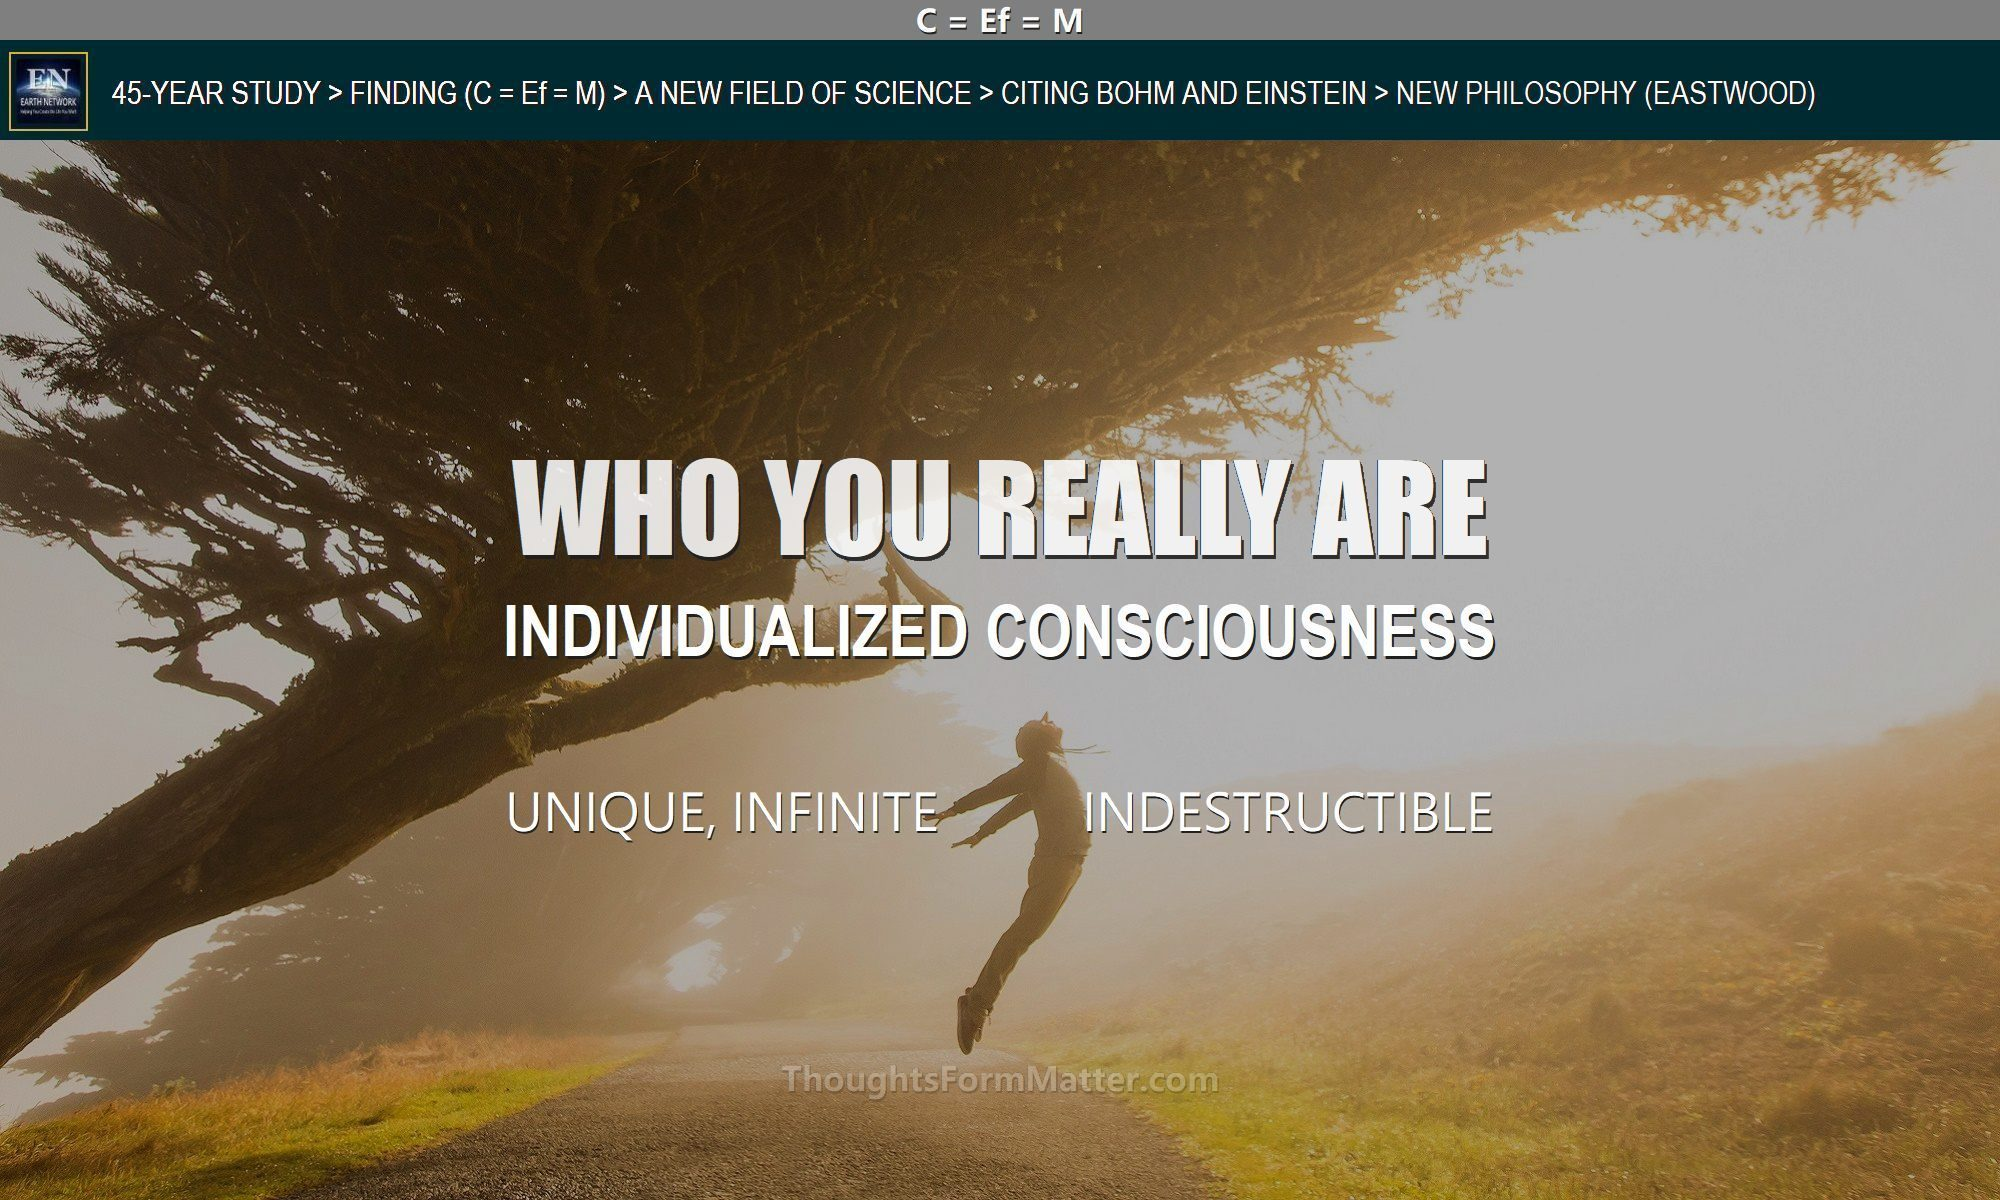 multidimensional-greater-metaphysical-self-the-inner-entity-soul-you-are-spirit